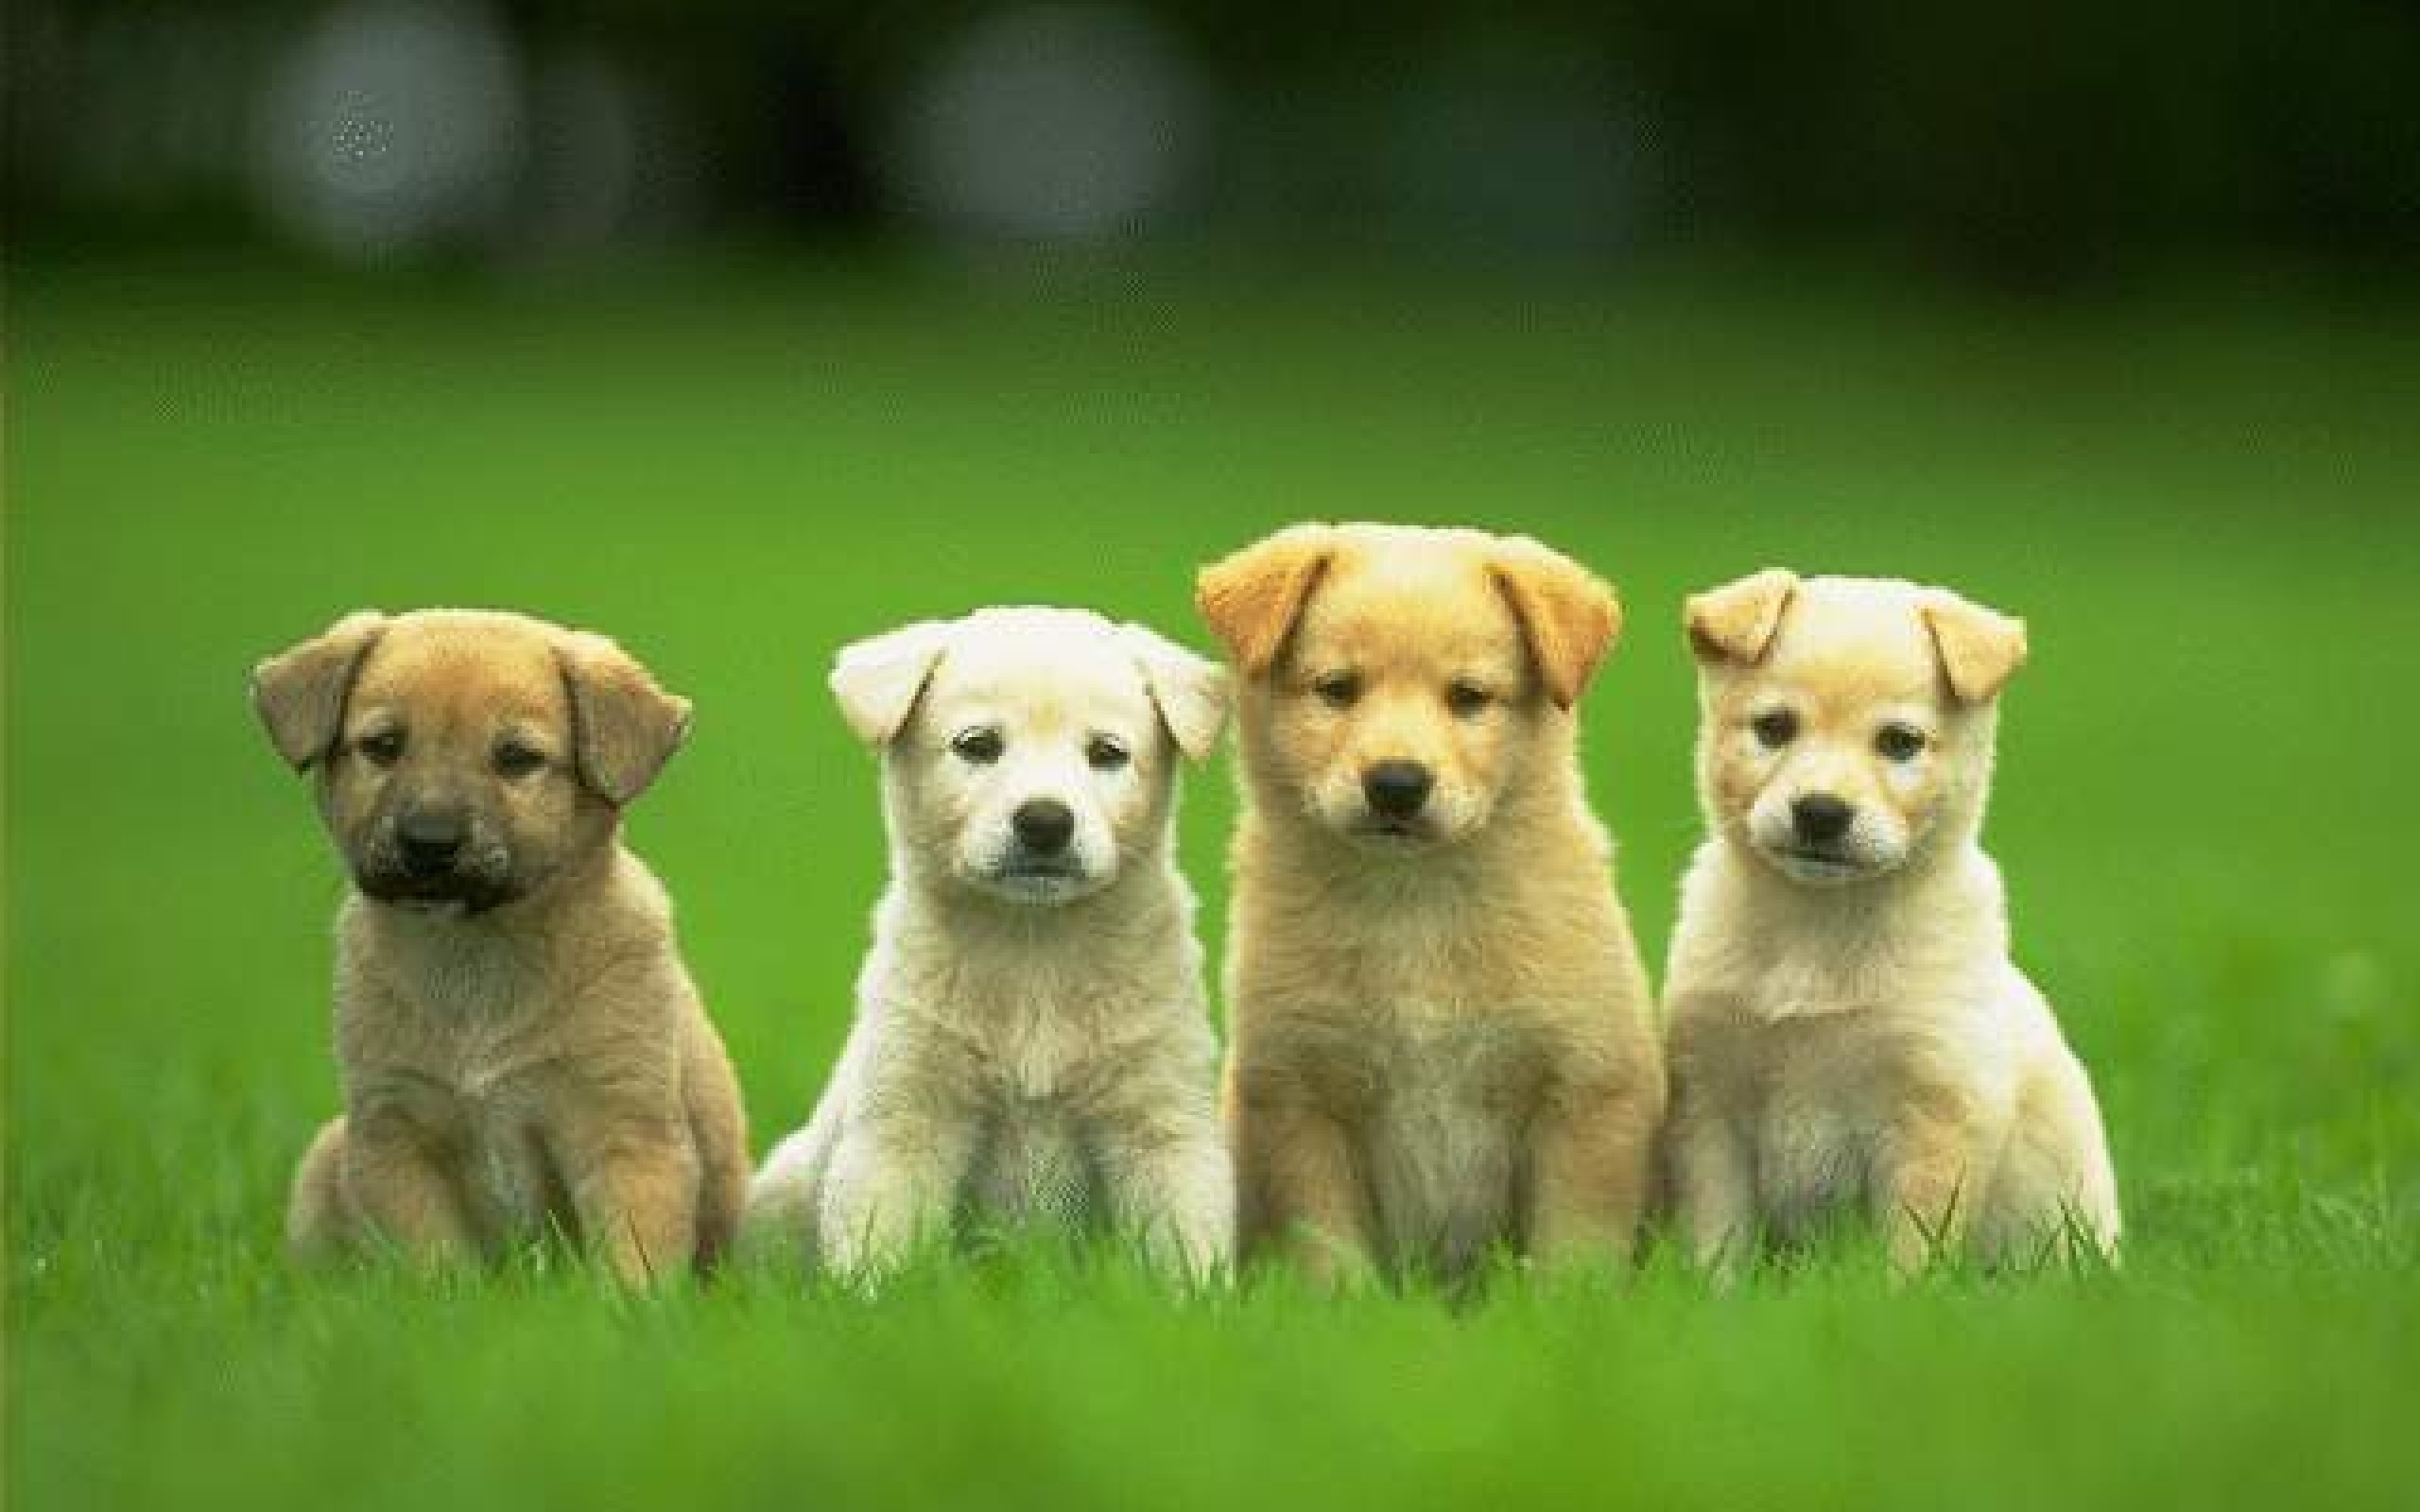 cute dogs wallpaper | 2560x1600 | #58315